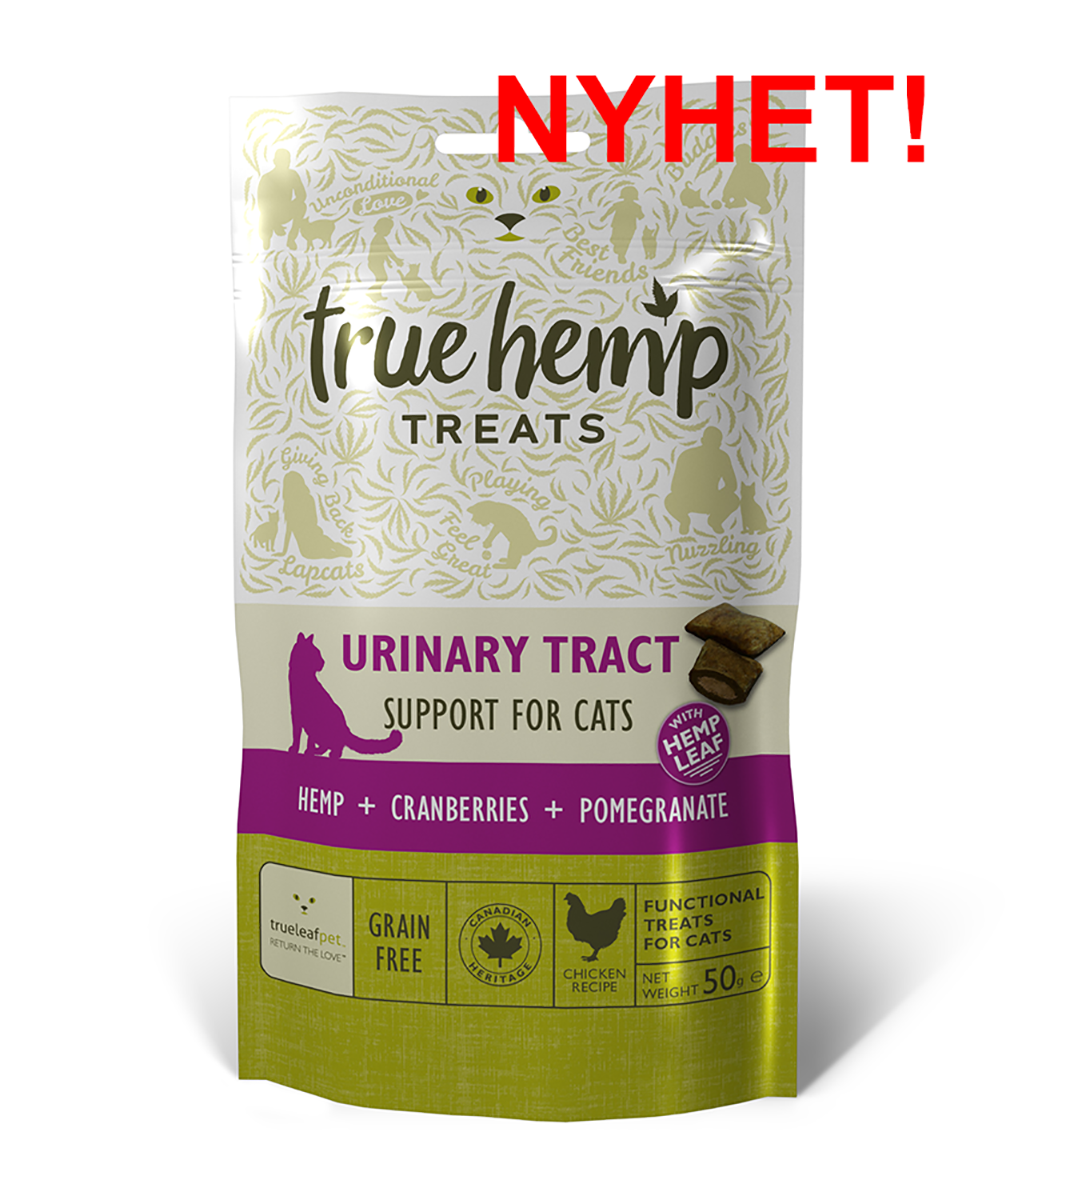 True Hemp Urinary Tract CAT treats